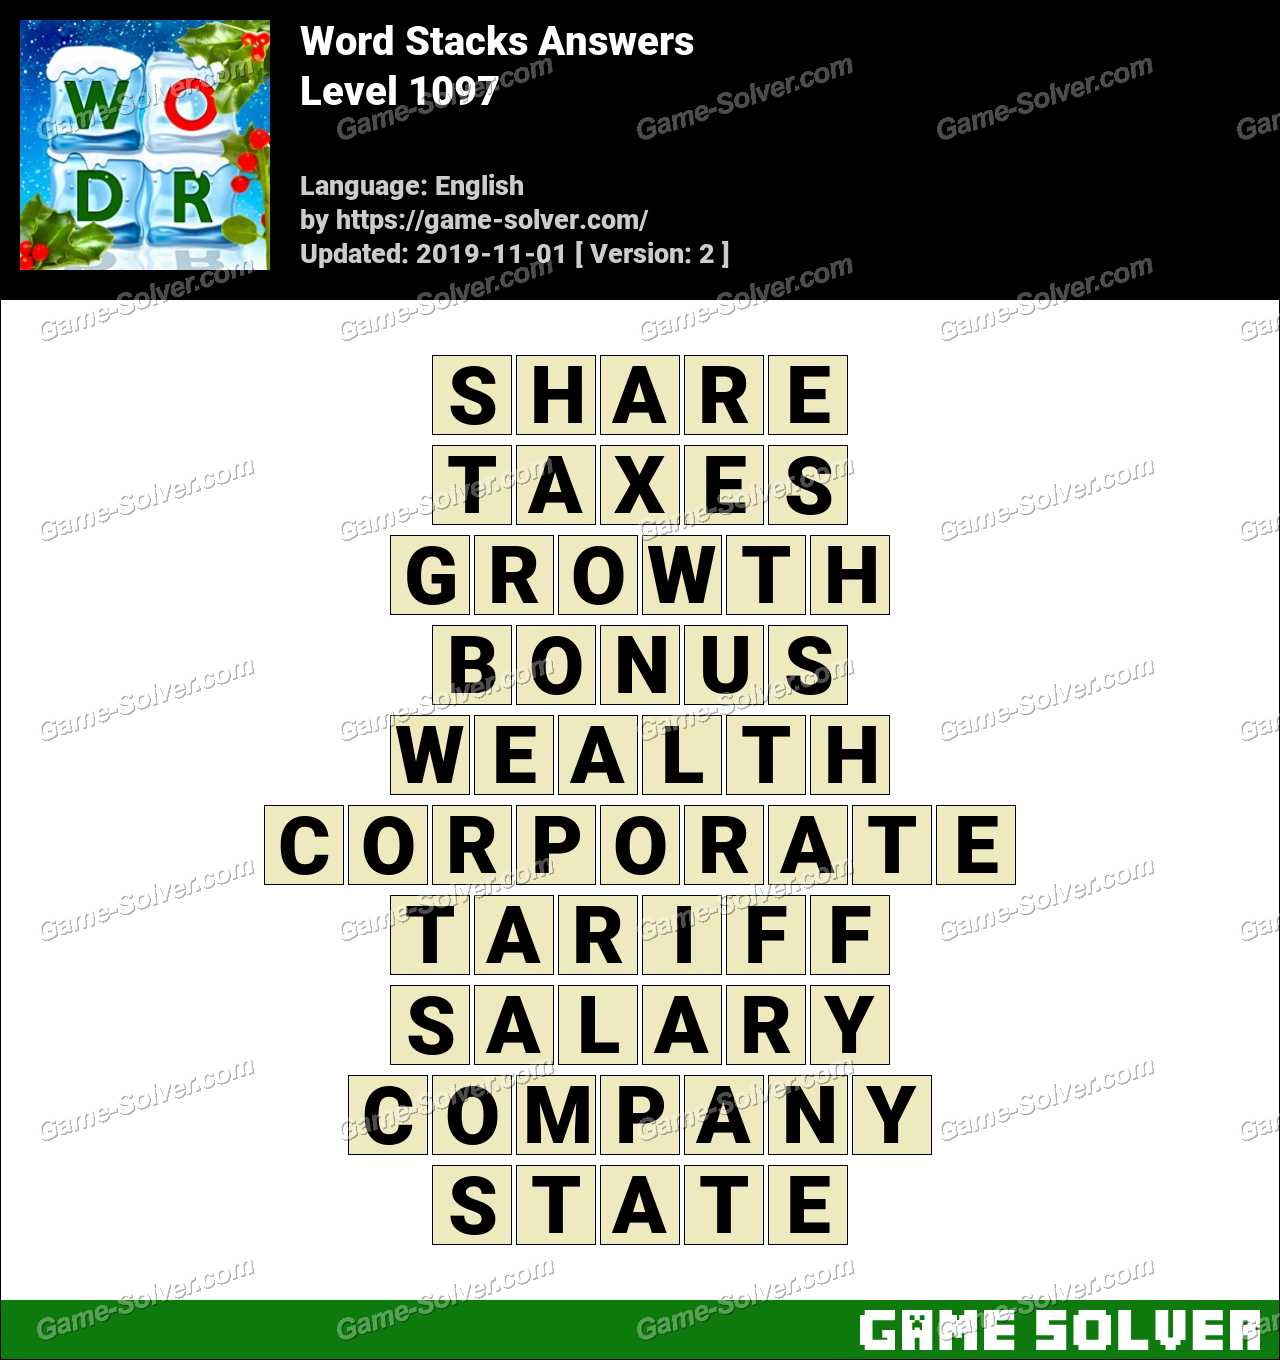 Word Stacks Level 1097 Answers